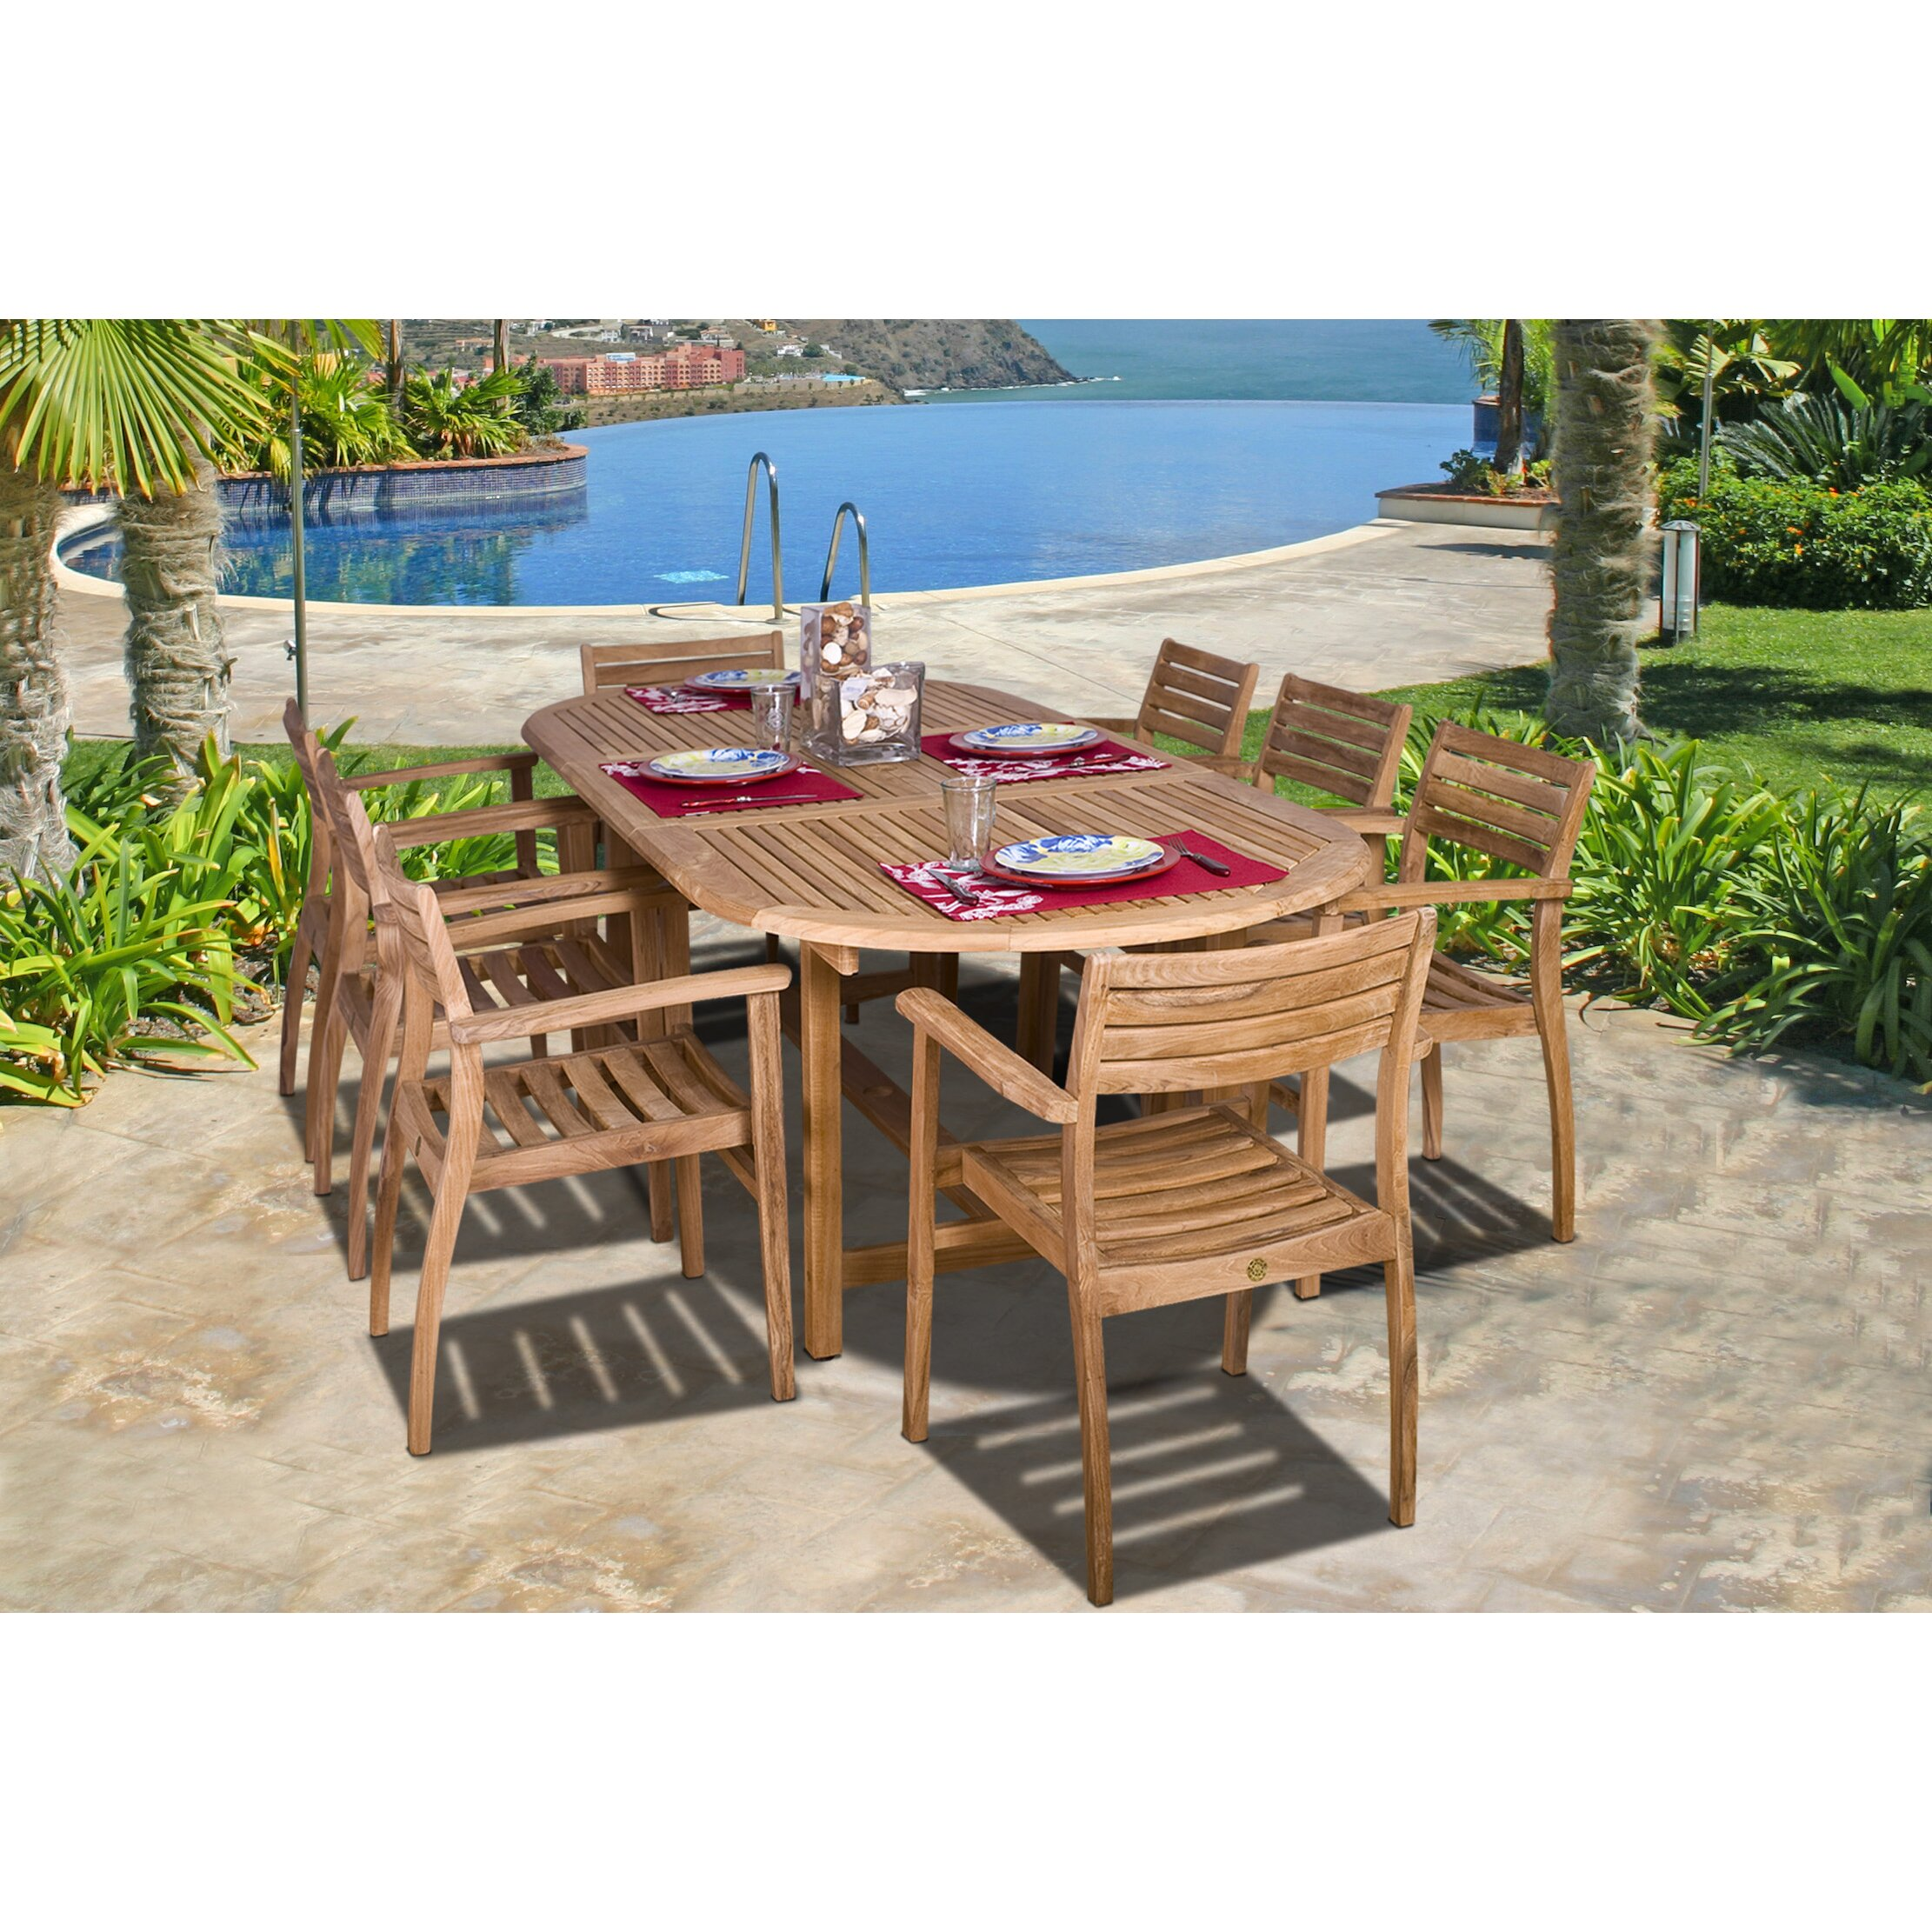 12 Seat Outdoor Dining Table Ten Person Patio Dining Sets Youll Love Wayfair